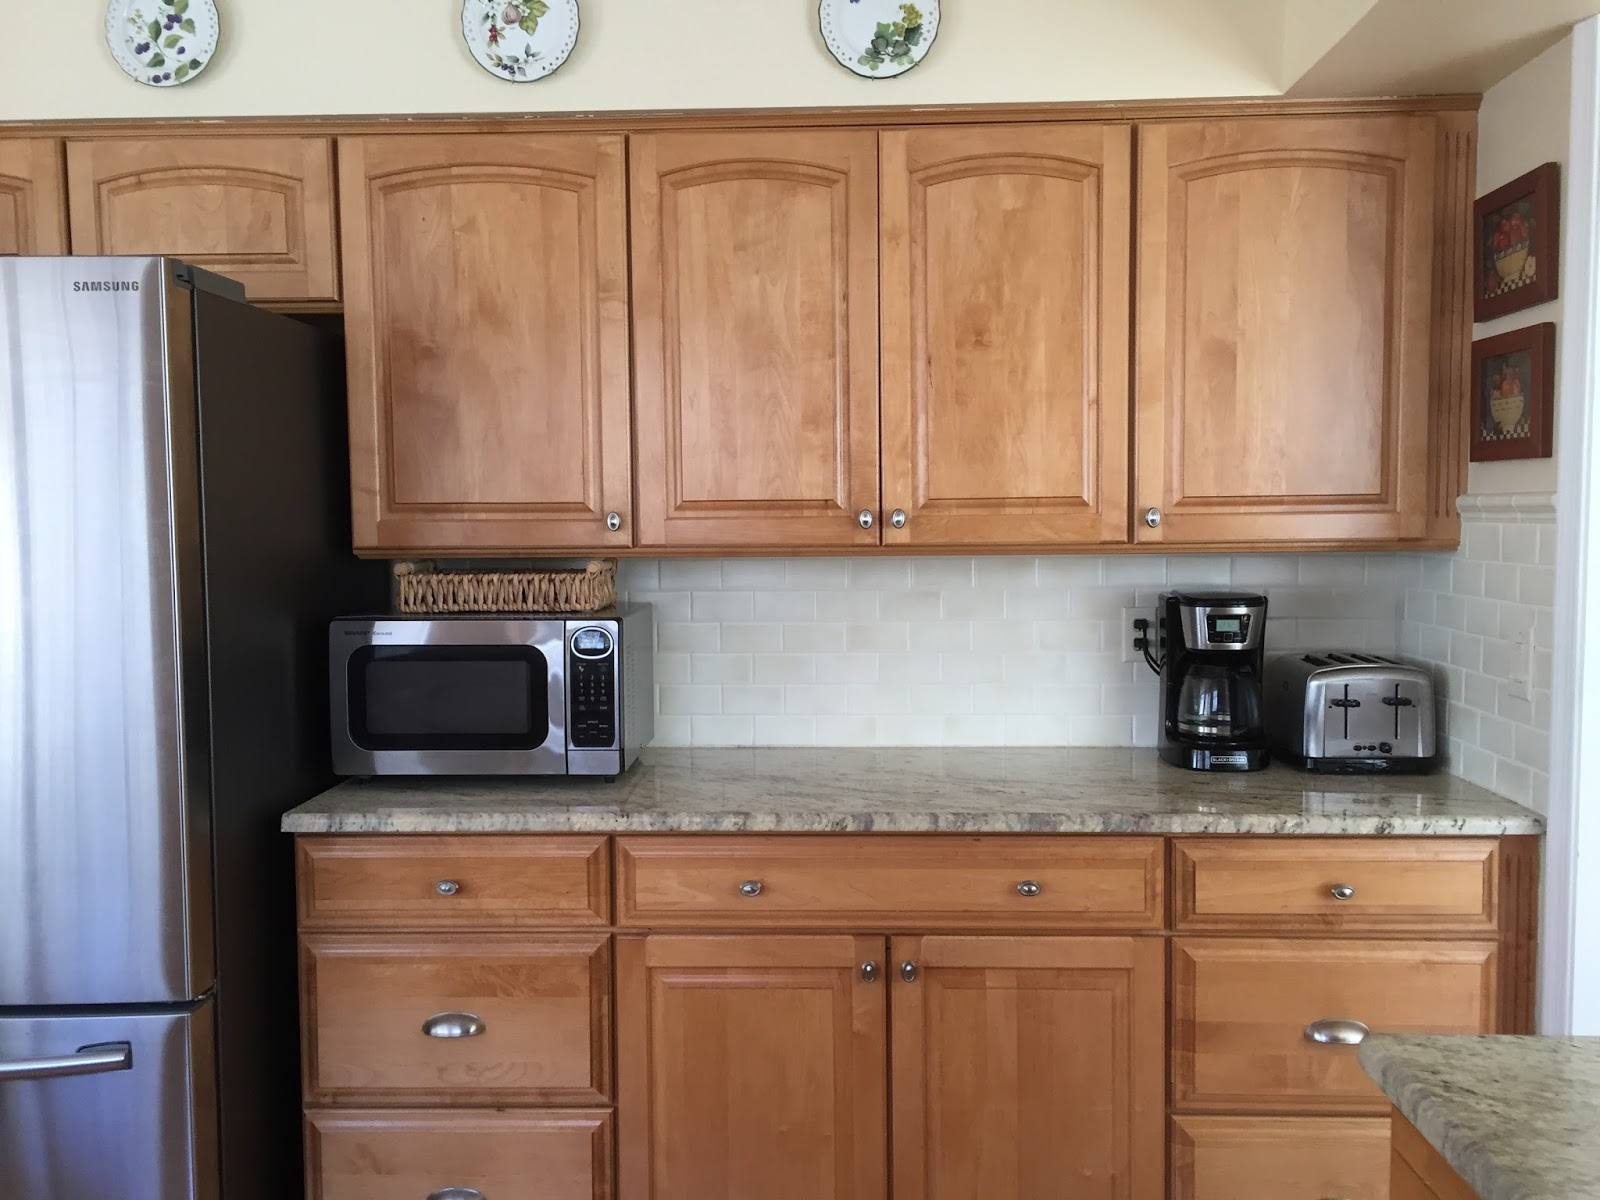 C b i d home decor and design refresh your home the - Peach color kitchen ...